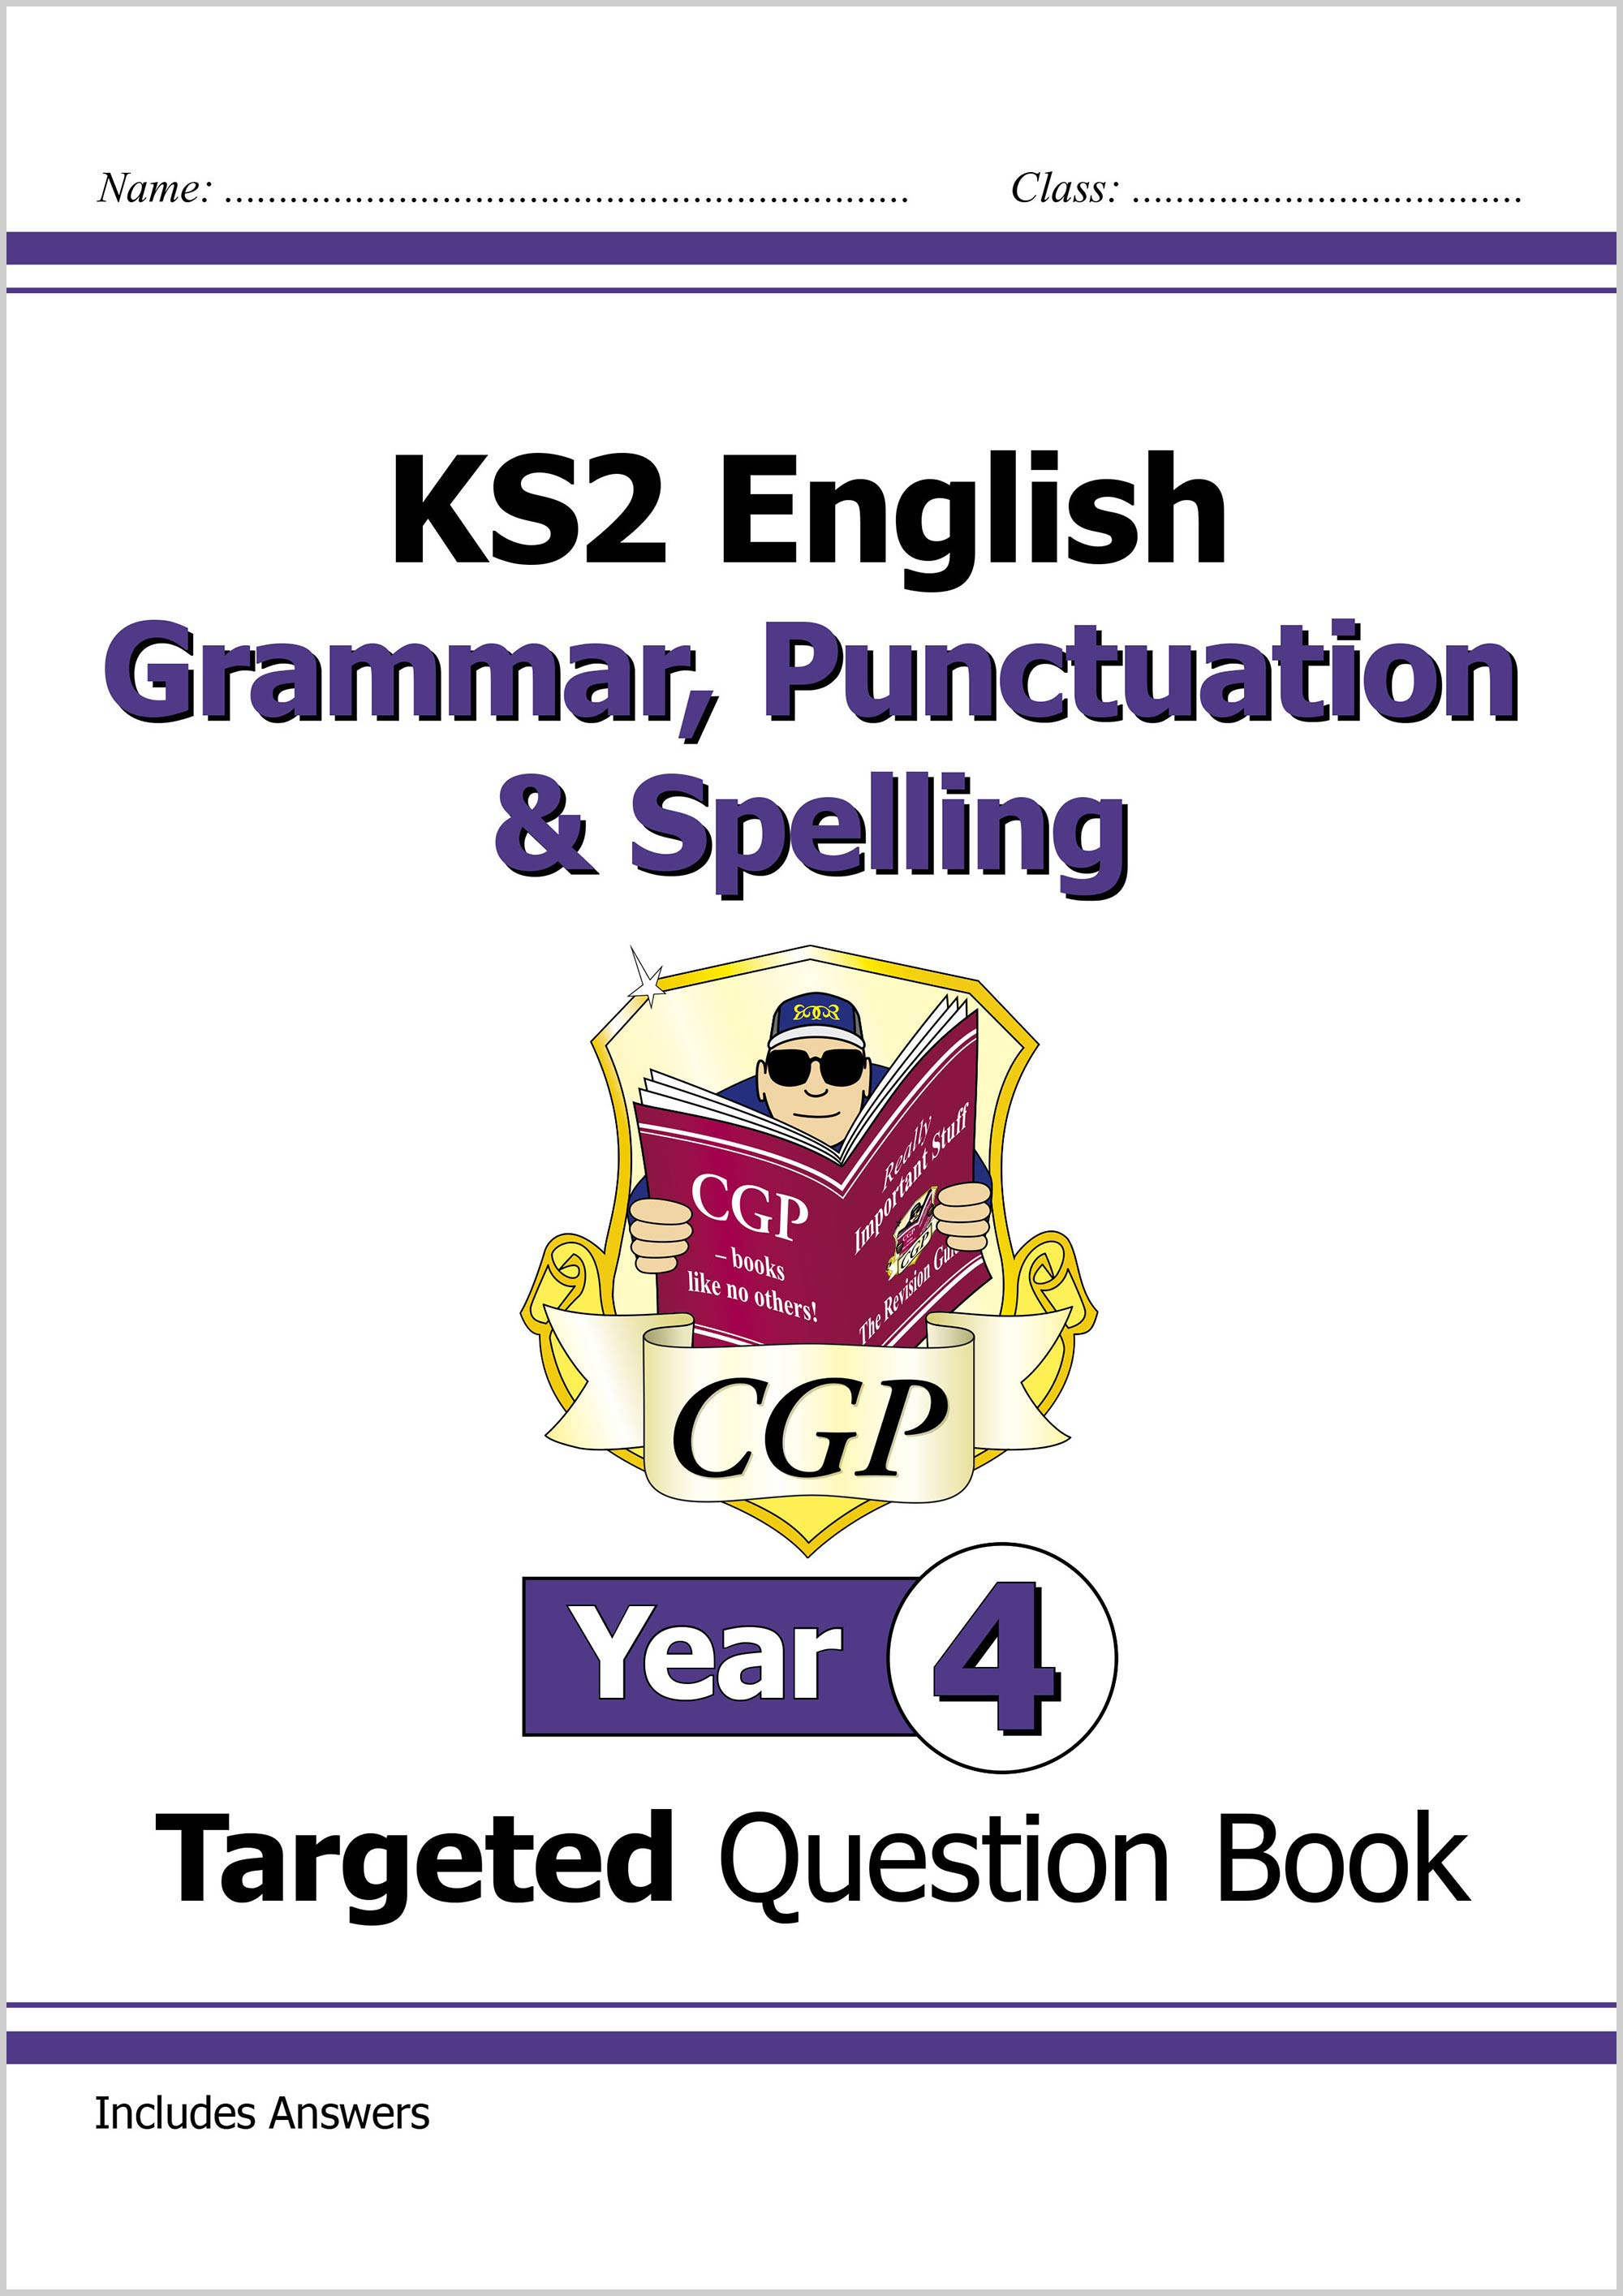 E4W22DK - KS2 English Targeted Question Book: Grammar, Punctuation & Spelling - Year 4